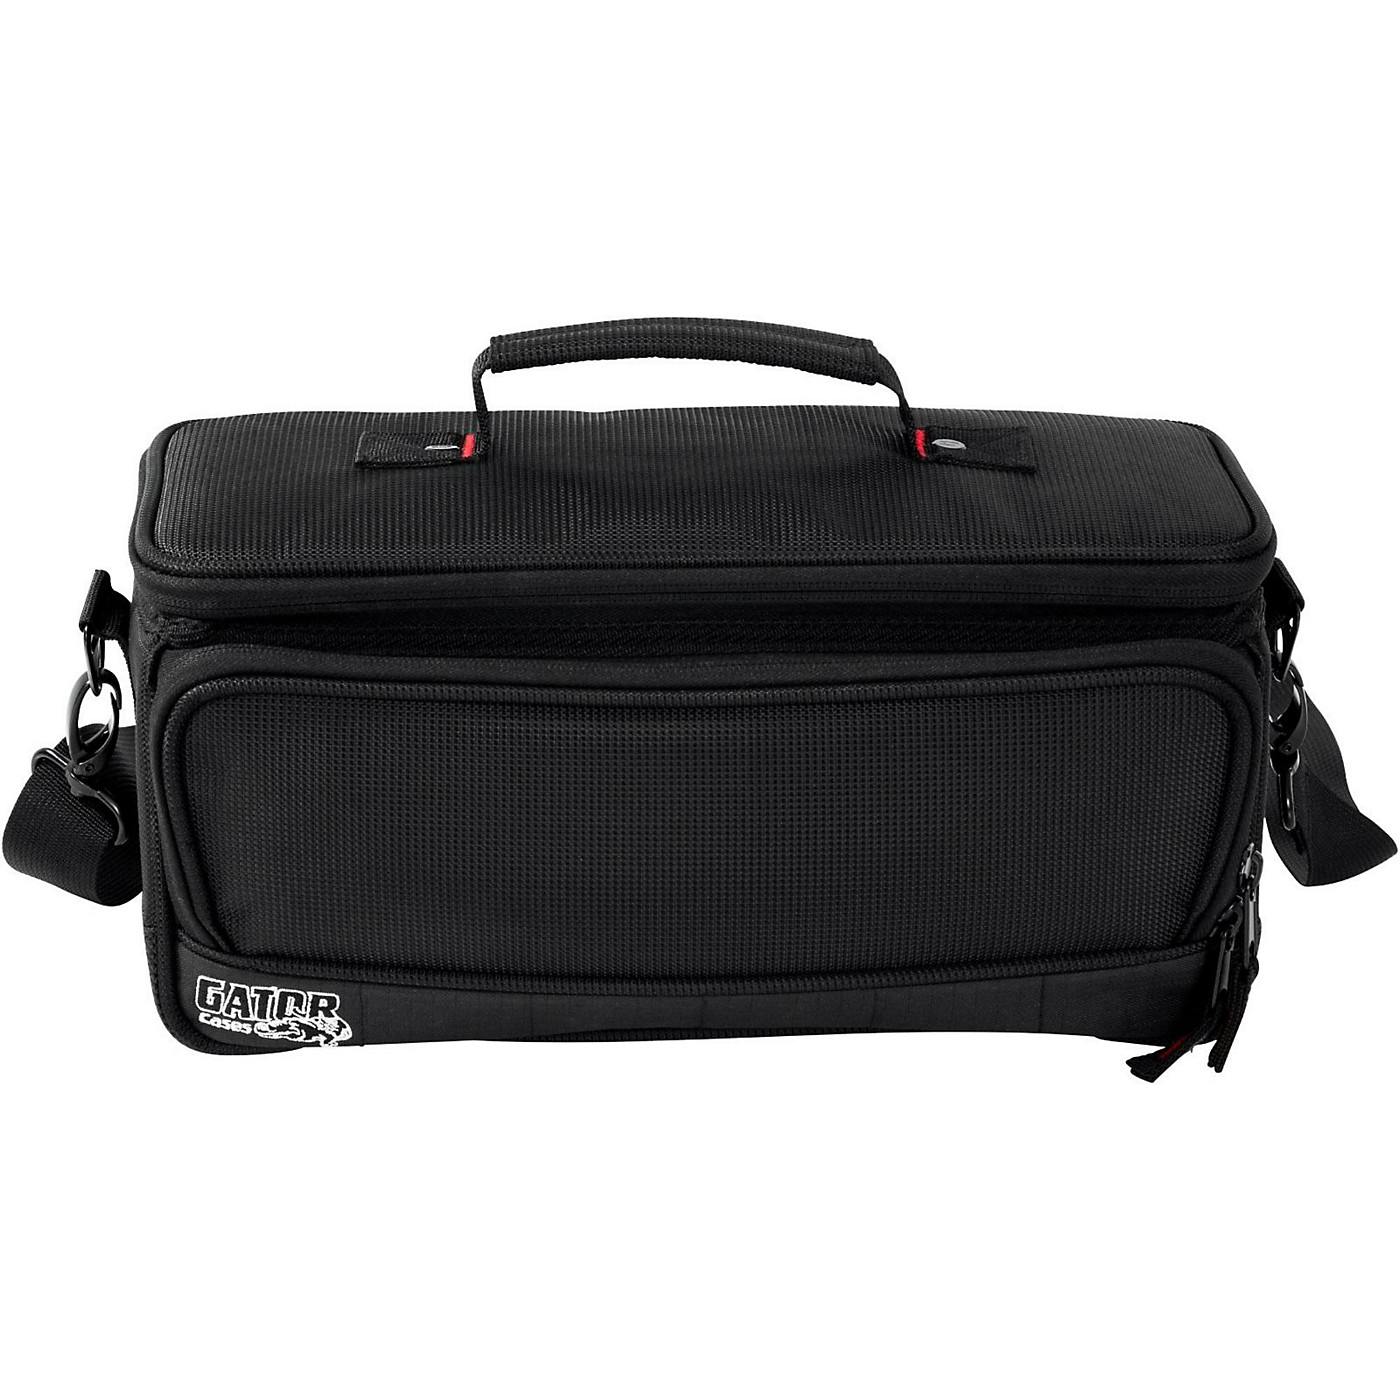 Gator Padded Carry Bag for X Air Series Mixers thumbnail